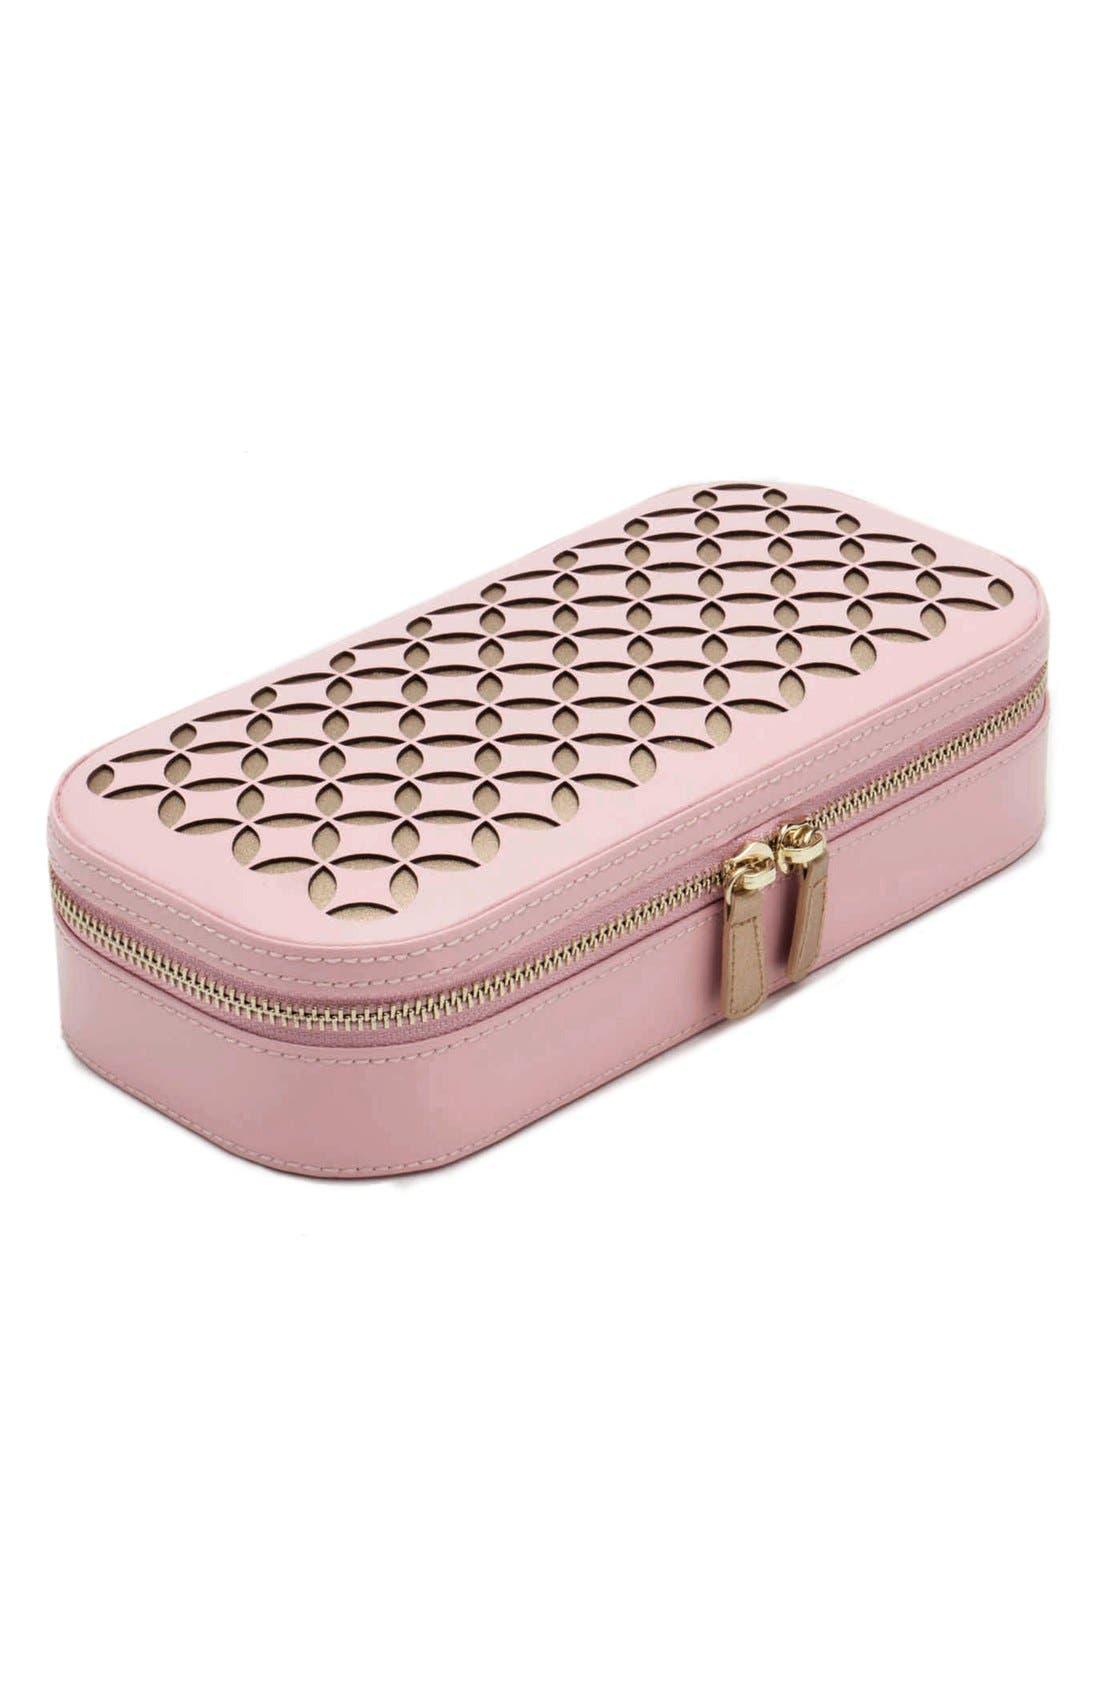 Chloe Zip Jewelry Case,                             Alternate thumbnail 2, color,                             650